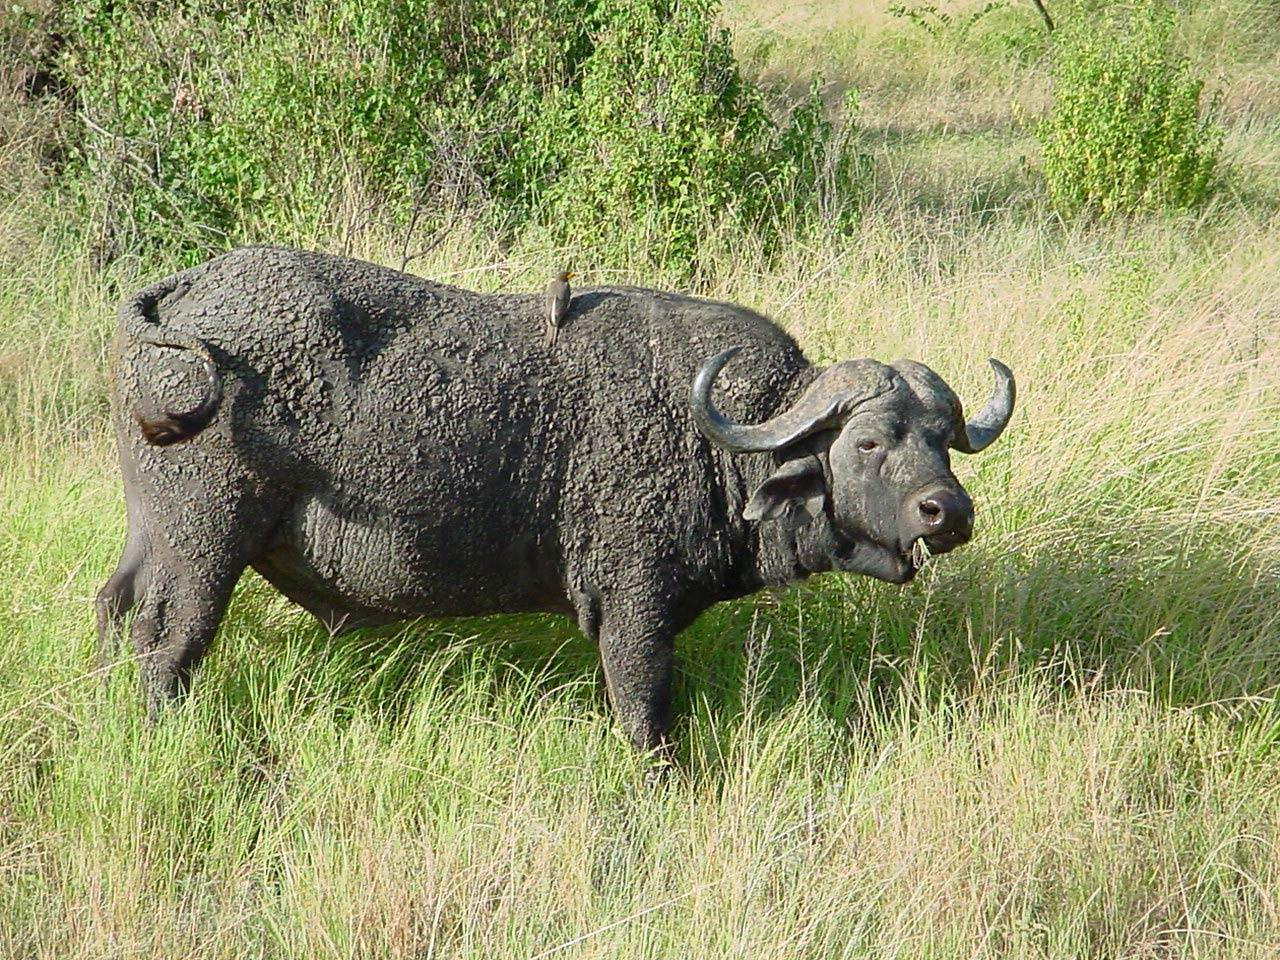 Water Buffalo Wallpapers